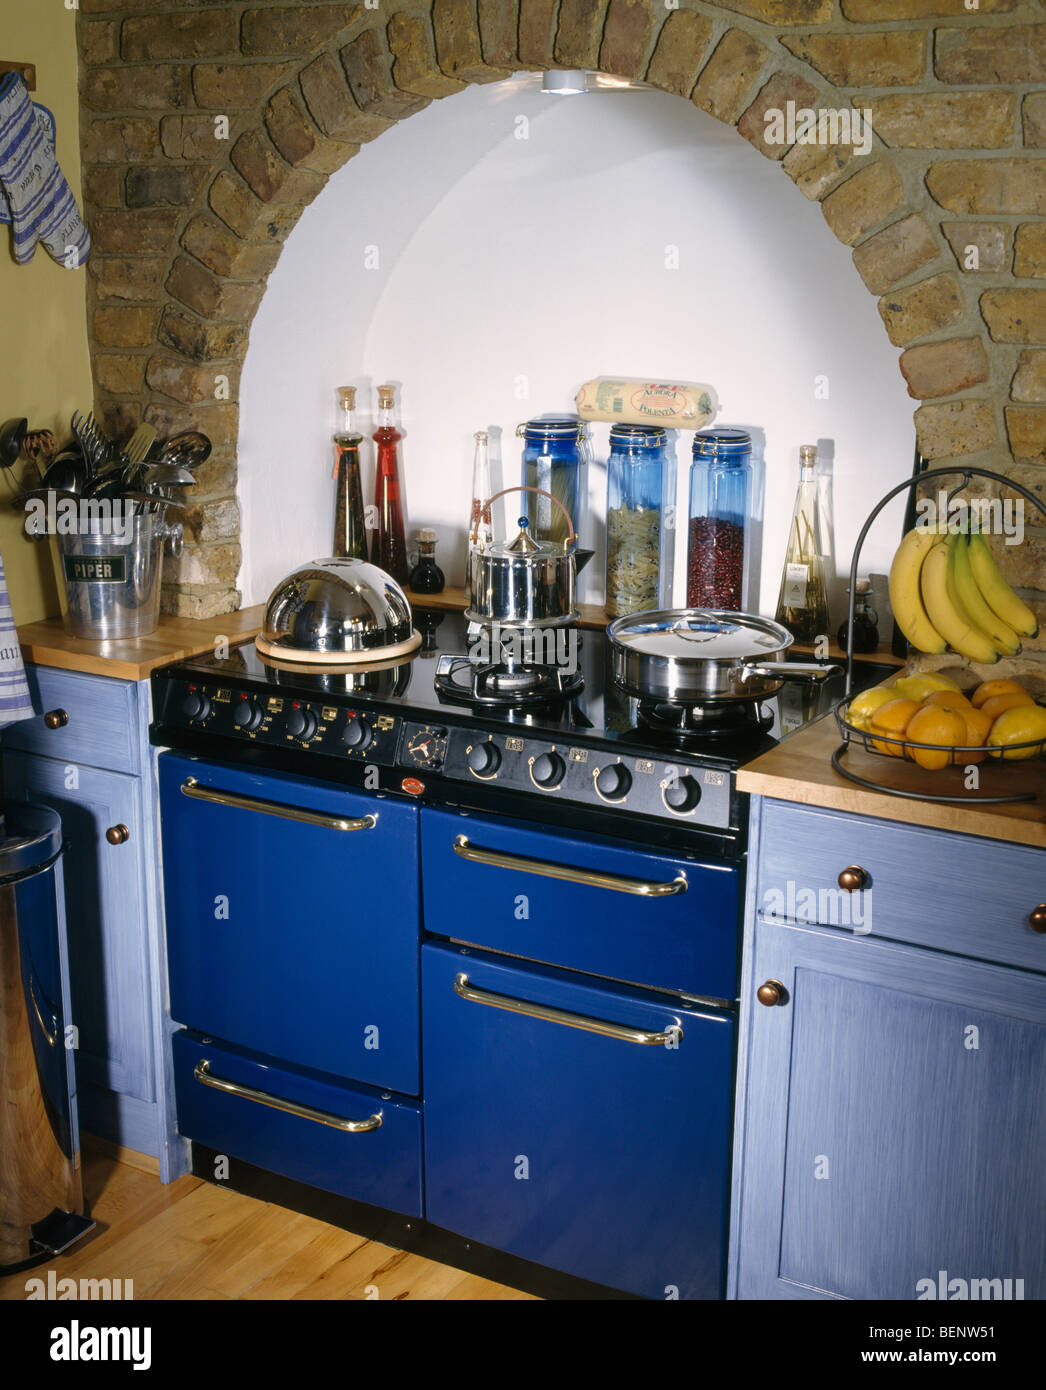 Kitchen Alcove Close Up Of Blue Range Oven In Alcove Of Traditional Kitchen With